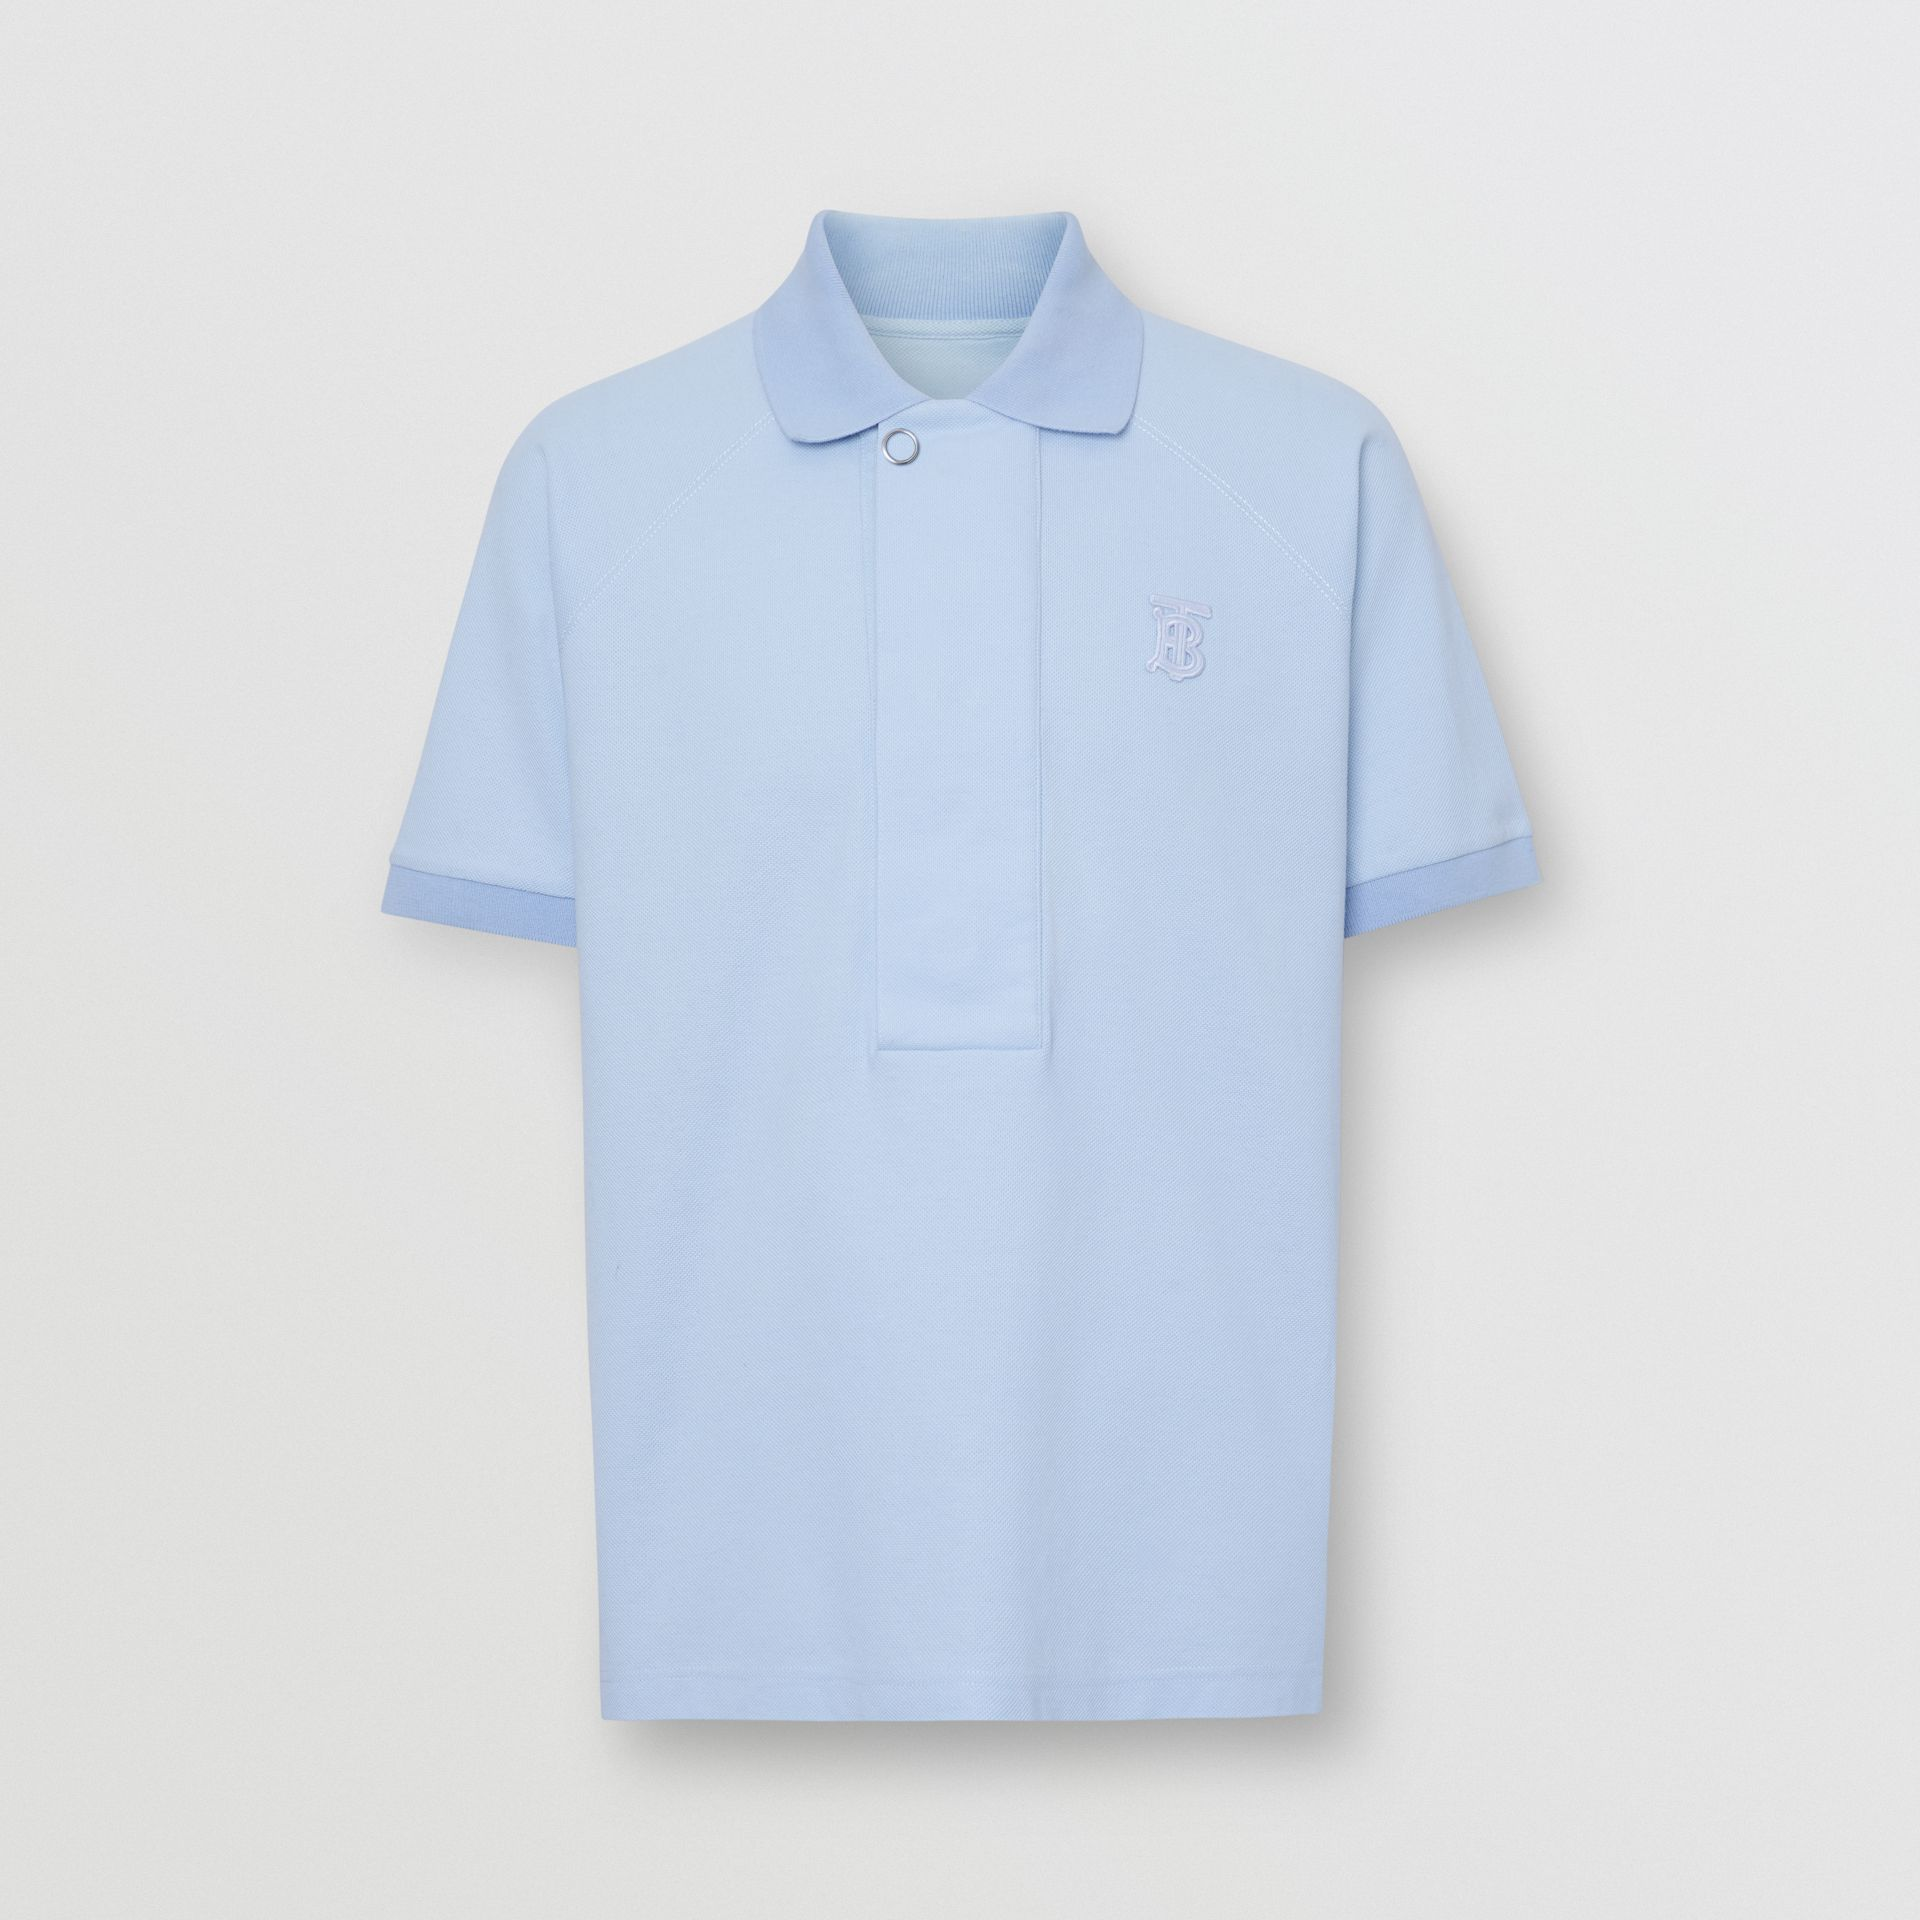 Monogram Motif Cotton Piqué Polo Shirt in Pale Blue | Burberry Singapore - gallery image 3